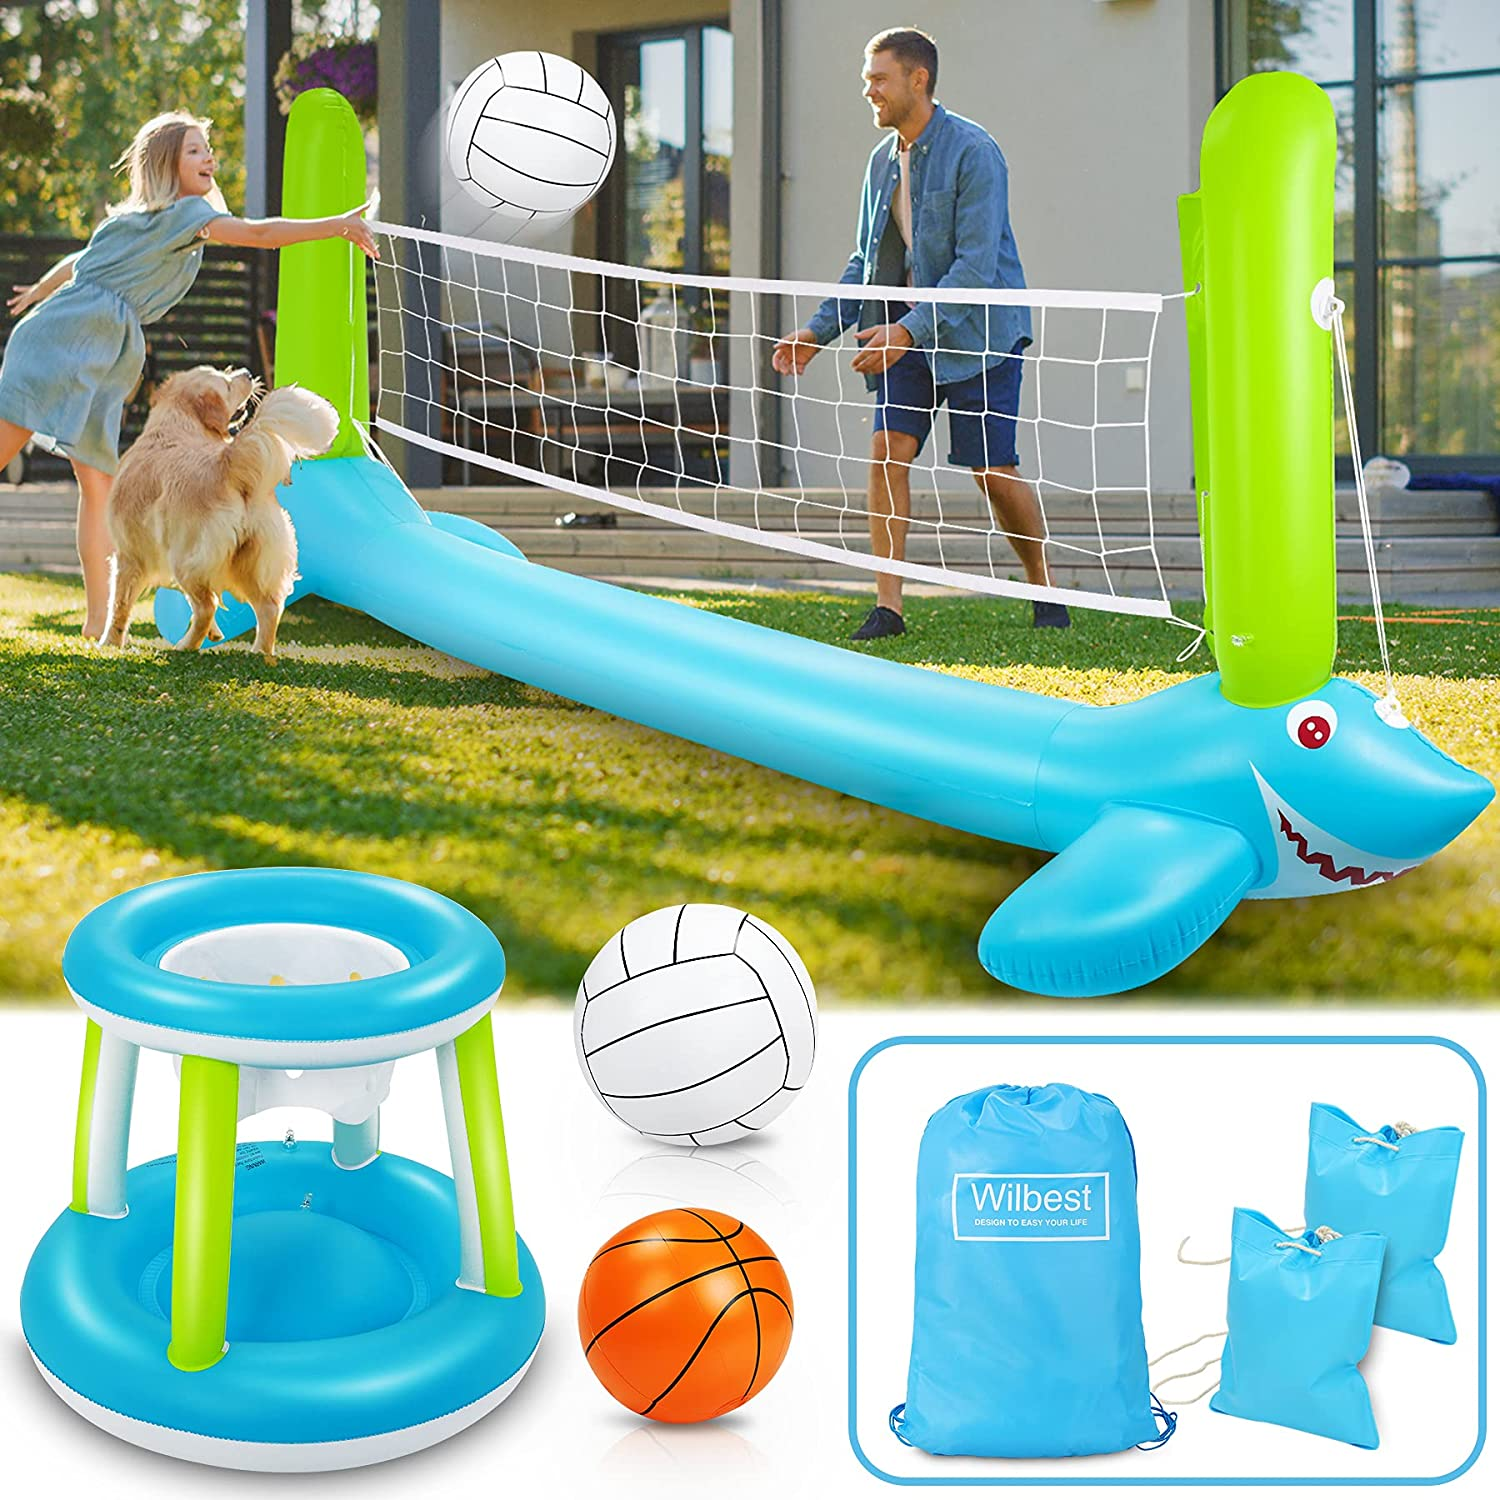 Wilbest Pool Genuine Free Free Shipping Cheap Bargain Gift Shipping Volleyball Set Float 120'' Larger Inflatable